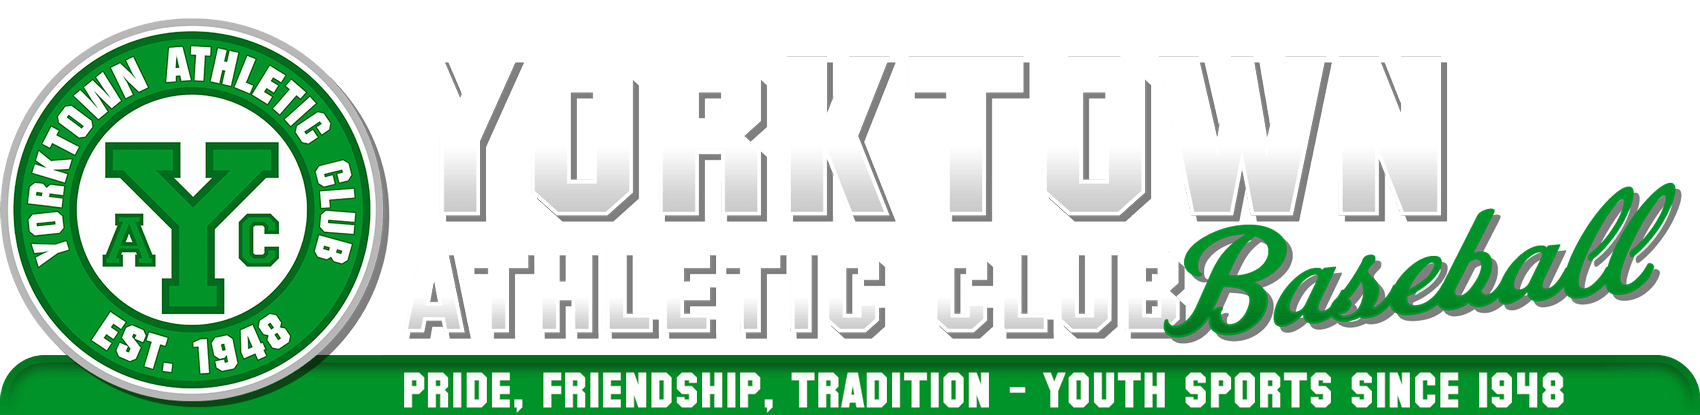 Yorktown Athletic Club, Baseball, Baseball, Run, Field